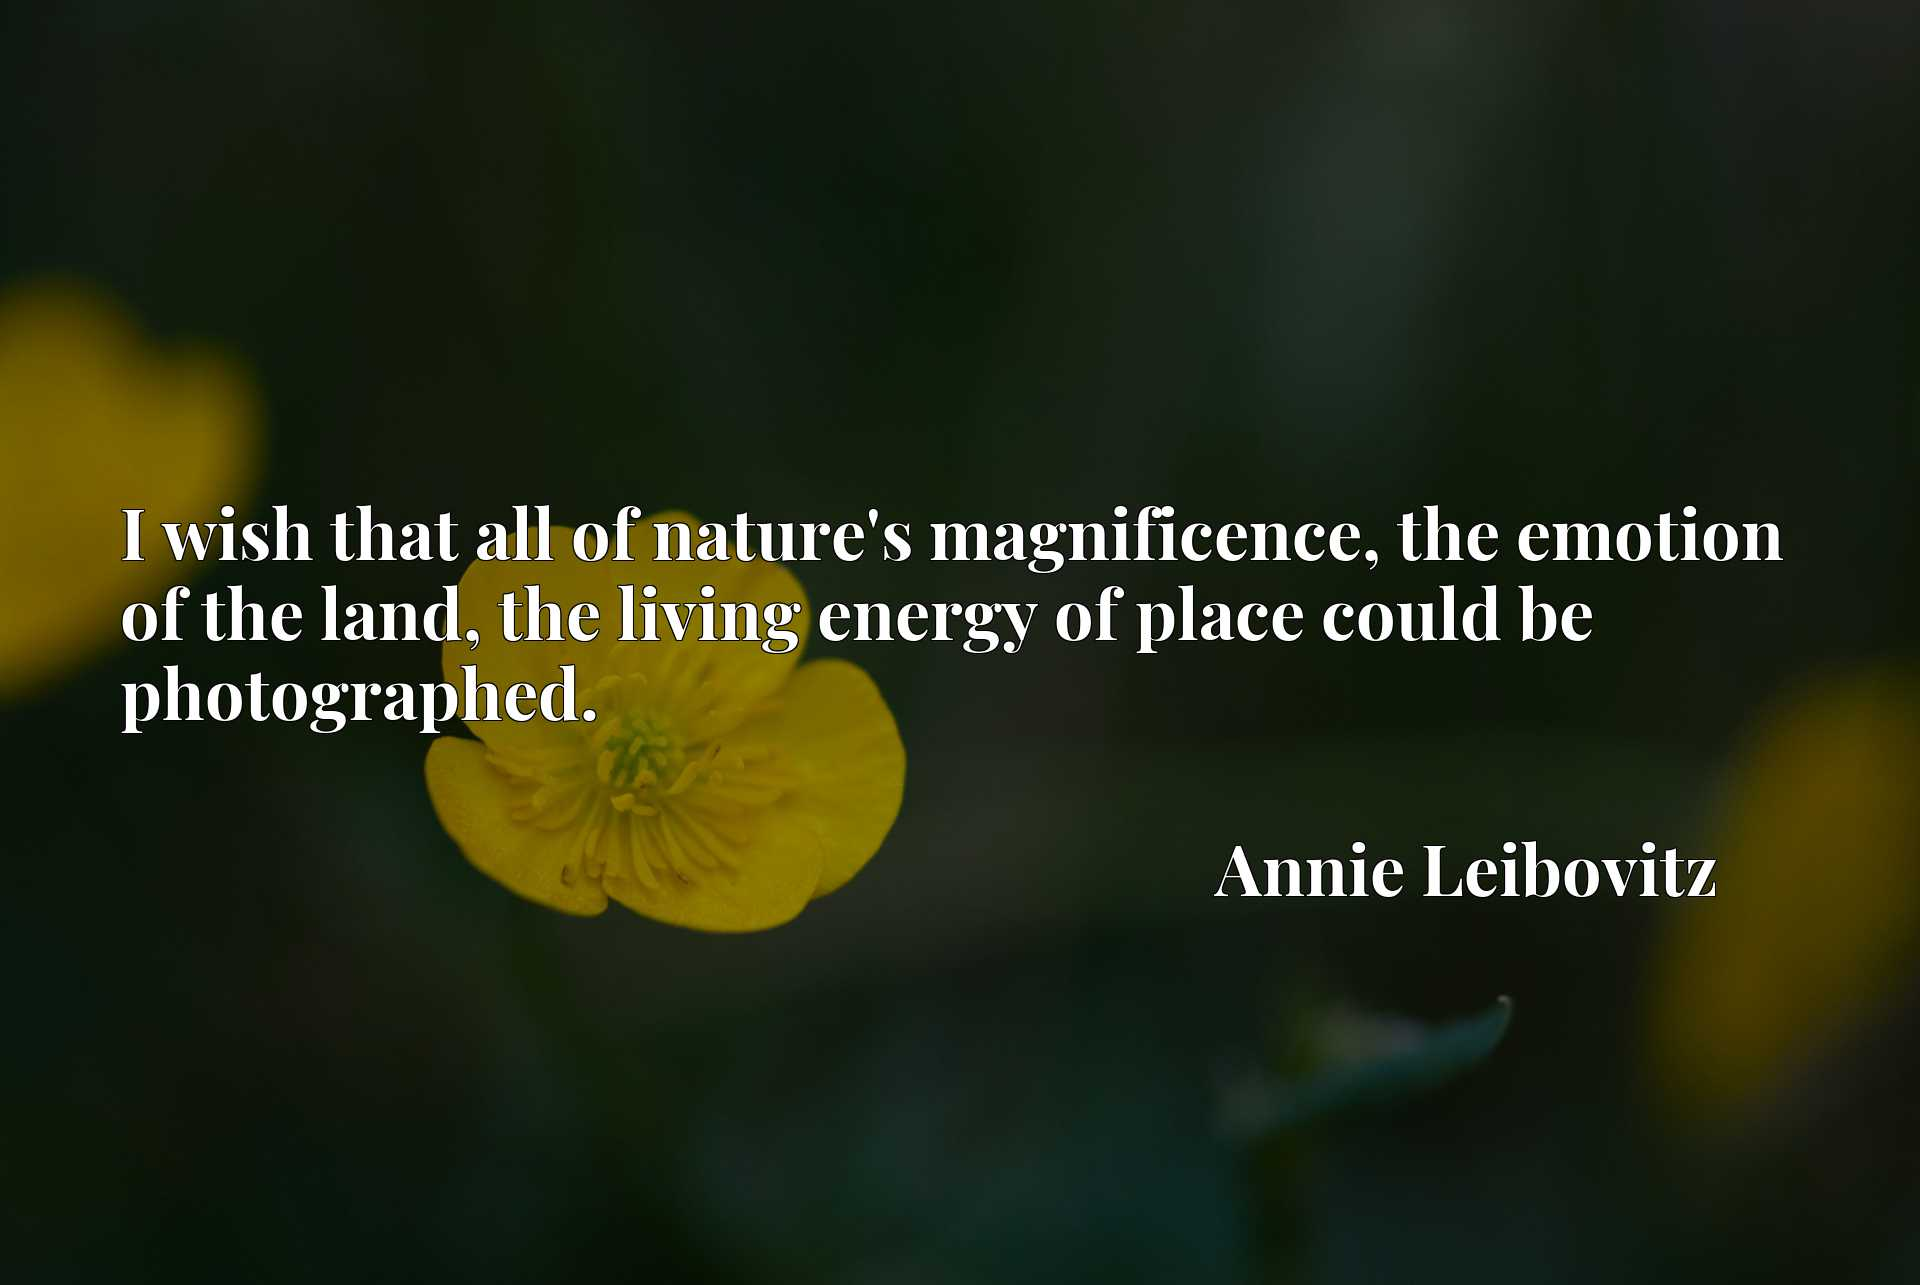 Quote Picture :I wish that all of nature's magnificence, the emotion of the land, the living energy of place could be photographed.